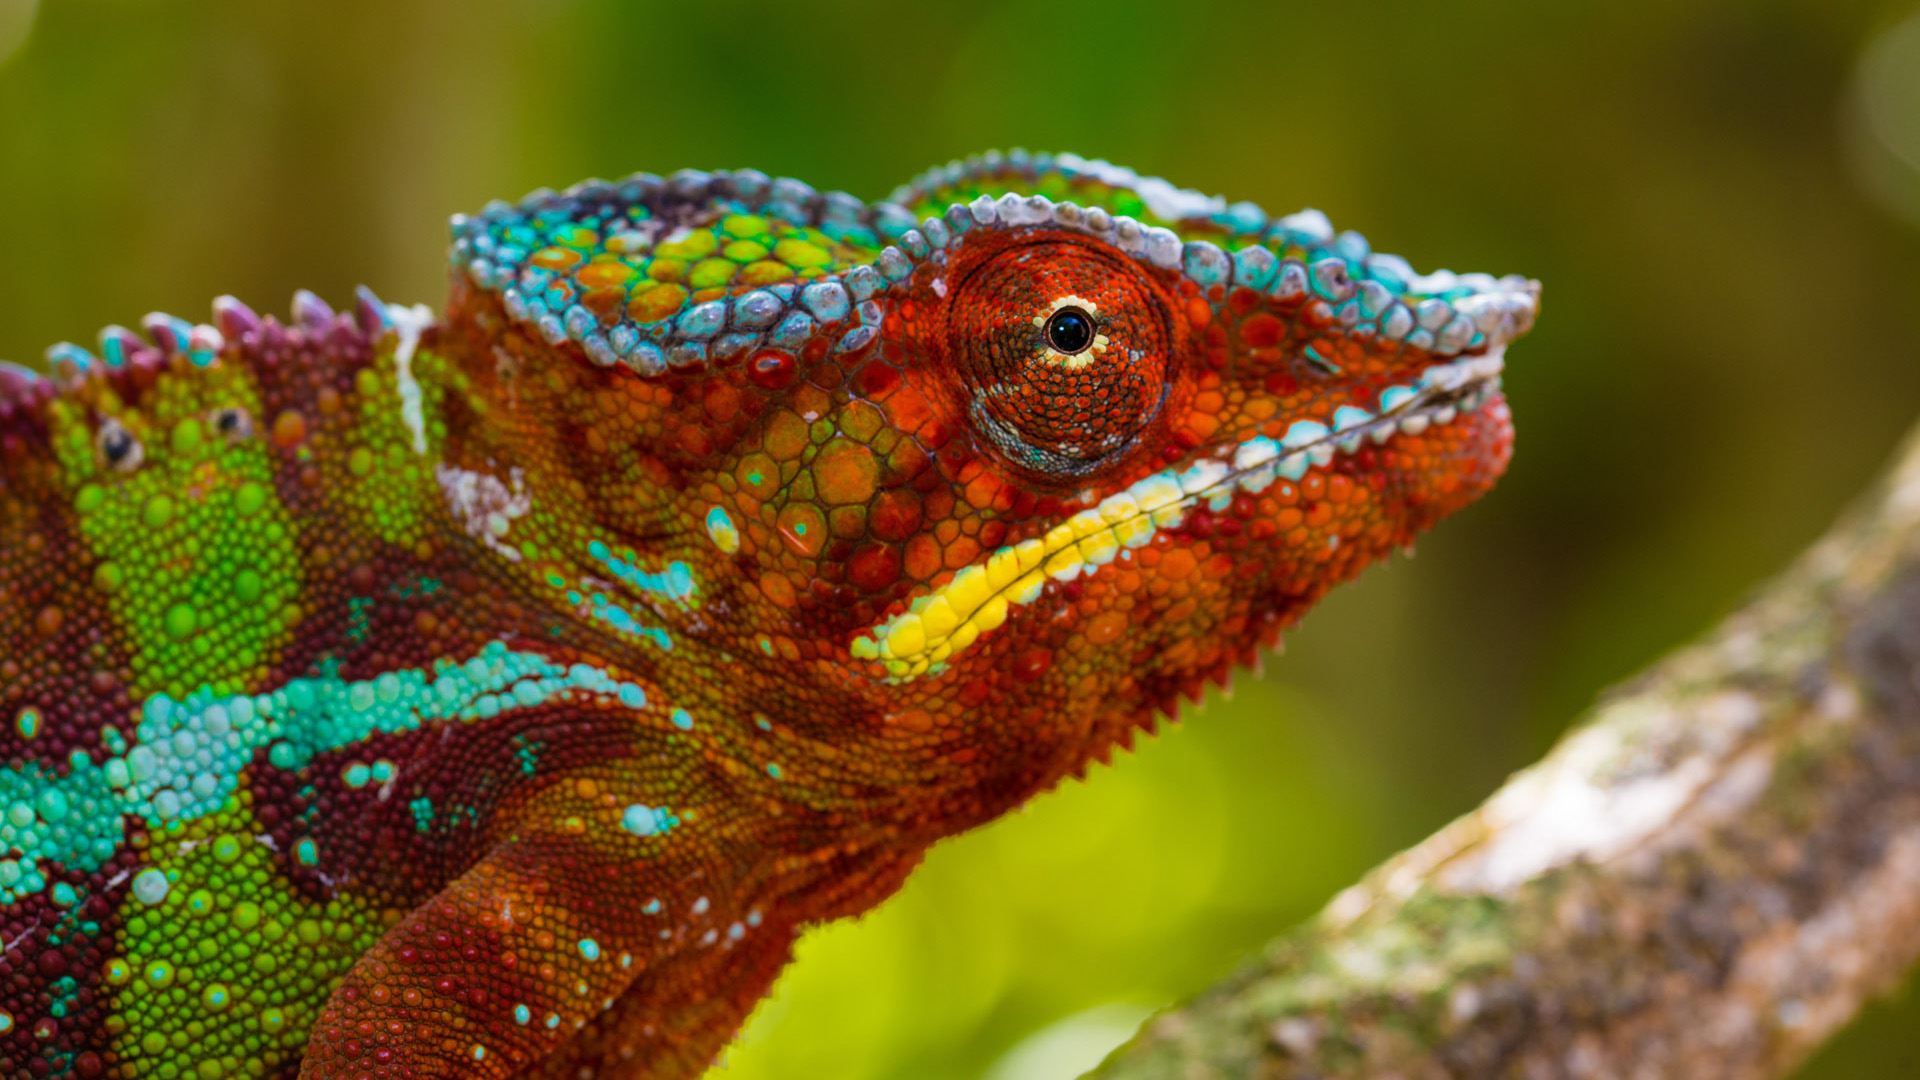 Panther chameleon by Shannon Wild